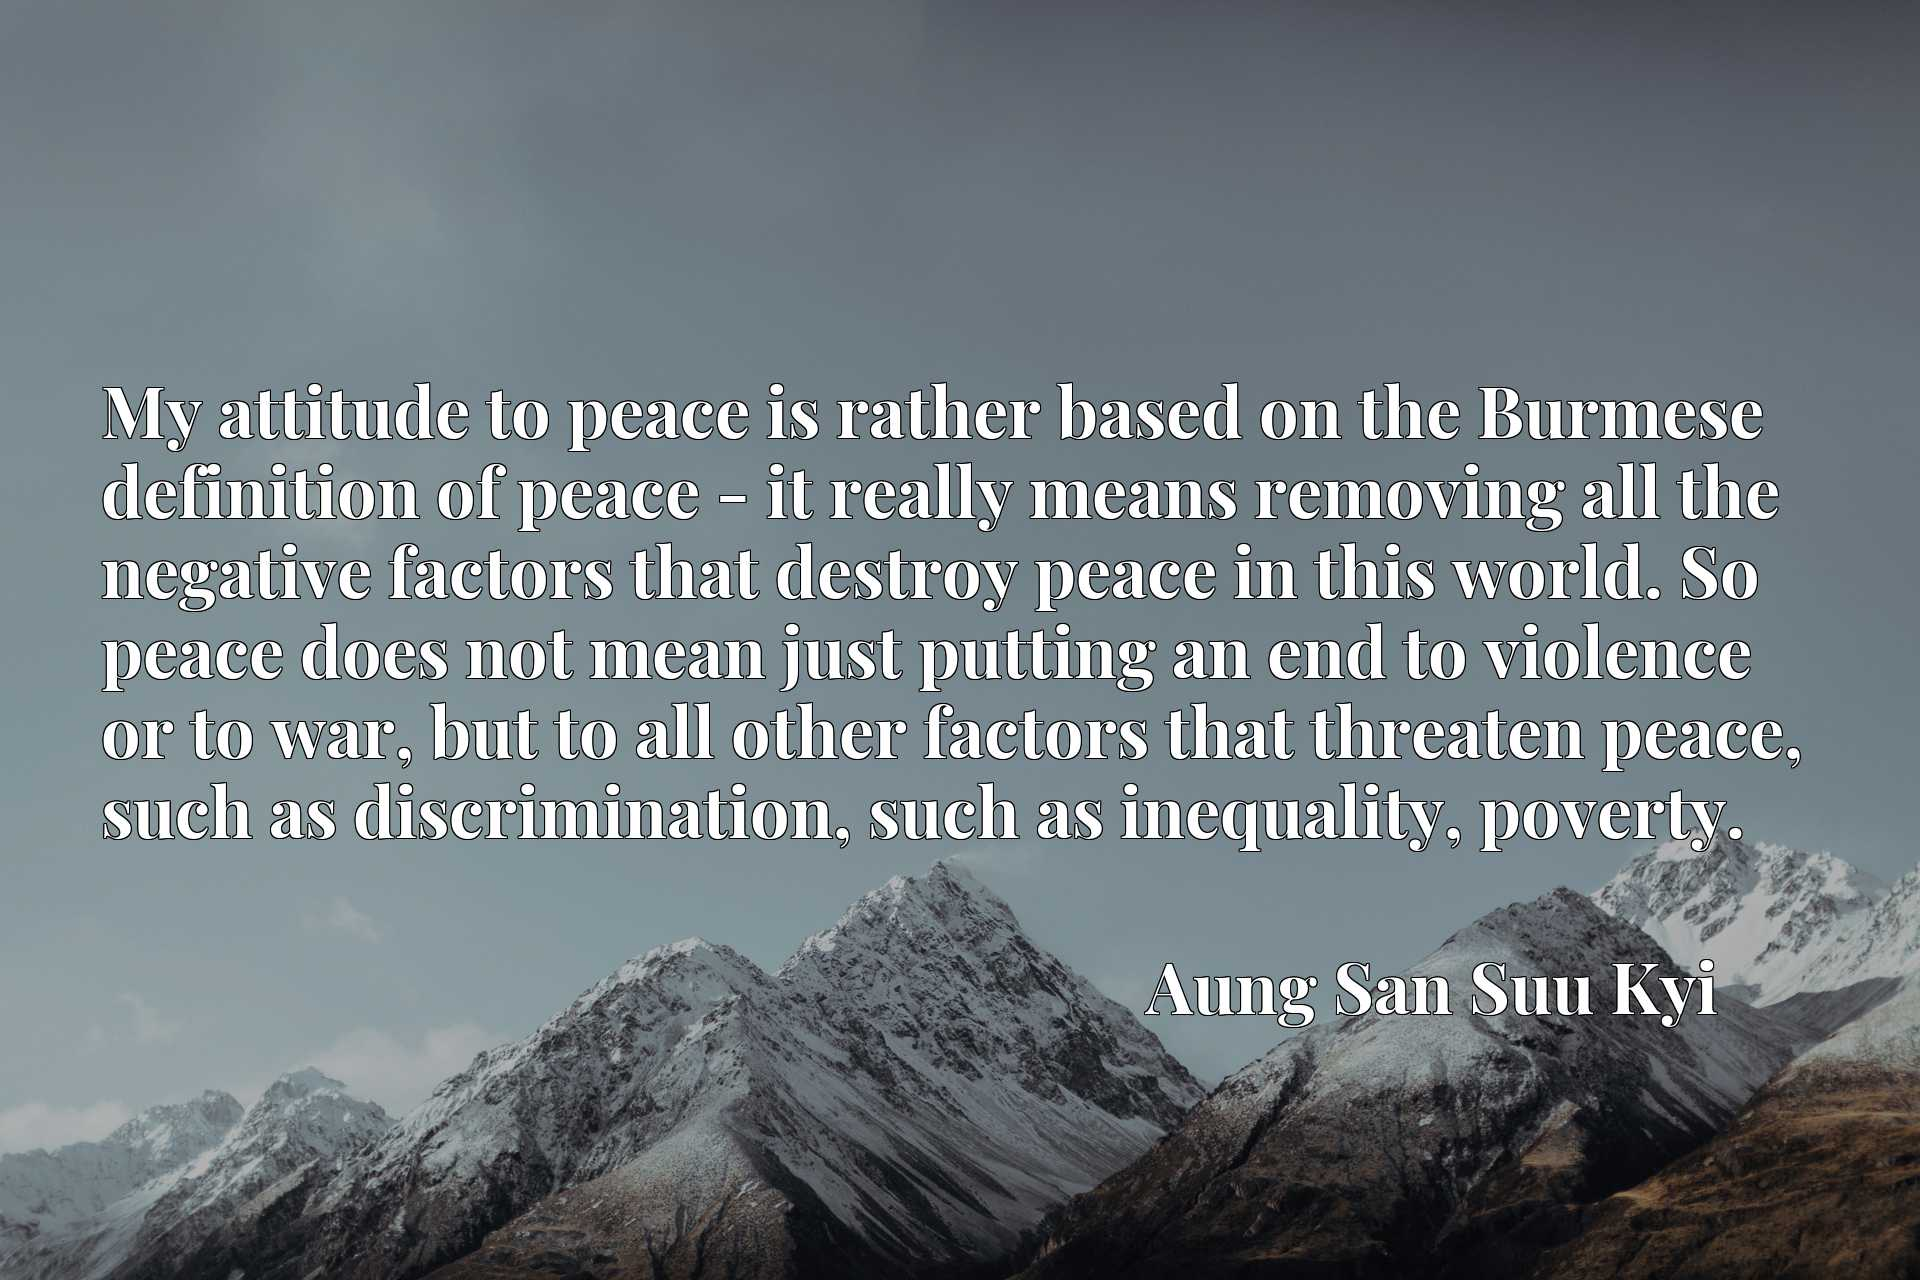 My attitude to peace is rather based on the Burmese definition of peace - it really means removing all the negative factors that destroy peace in this world. So peace does not mean just putting an end to violence or to war, but to all other factors that threaten peace, such as discrimination, such as inequality, poverty.